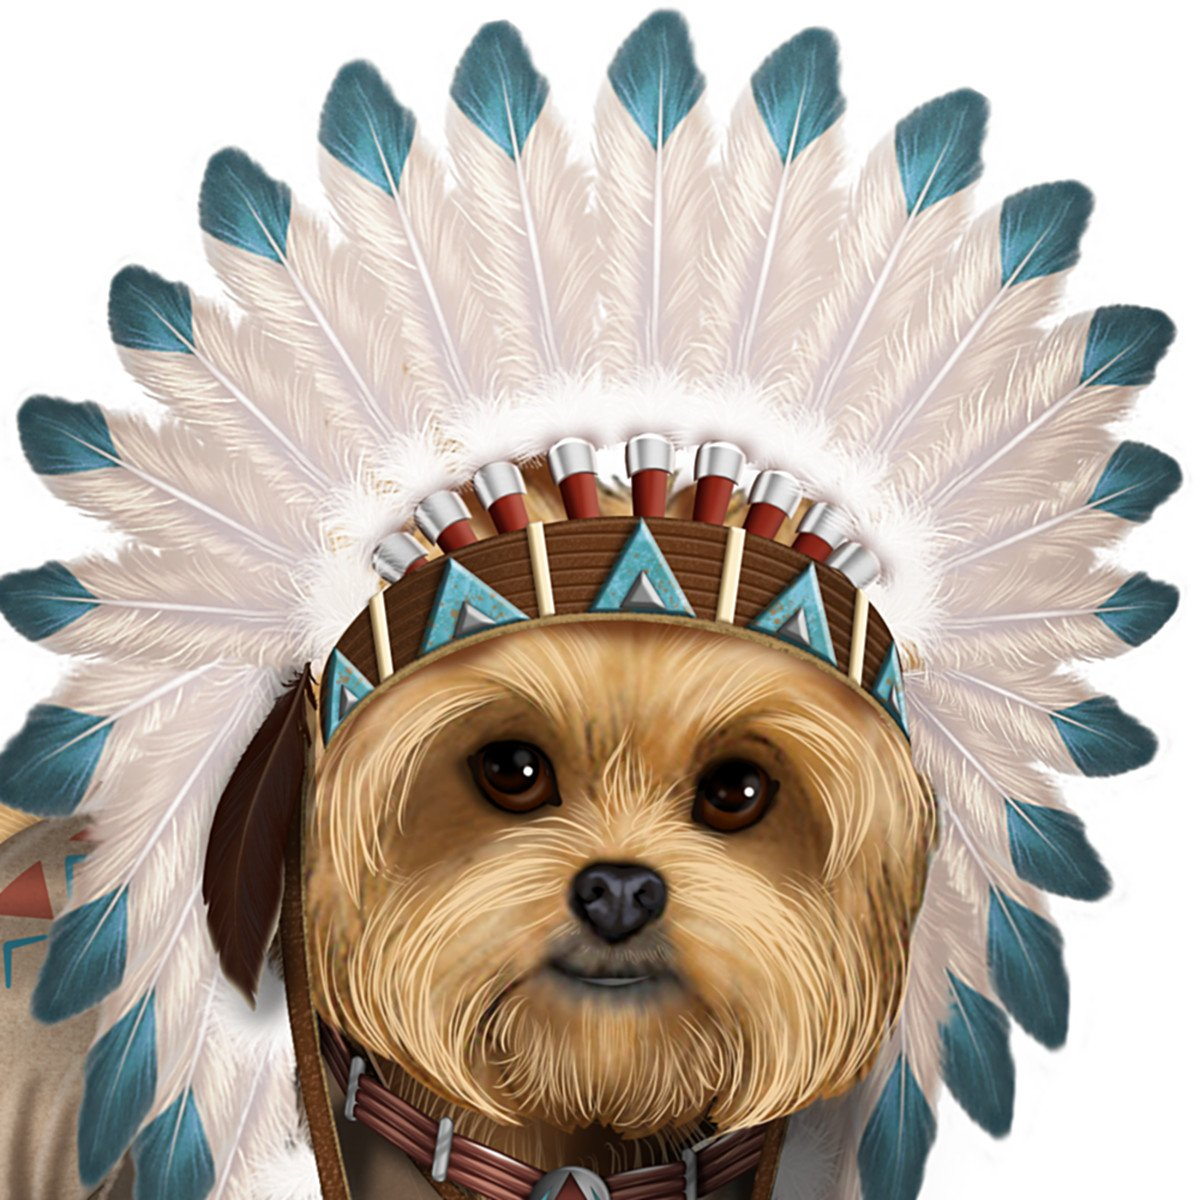 Native American Inspired Chief Little Paws Yorkie Figurine by The Hamilton Collection